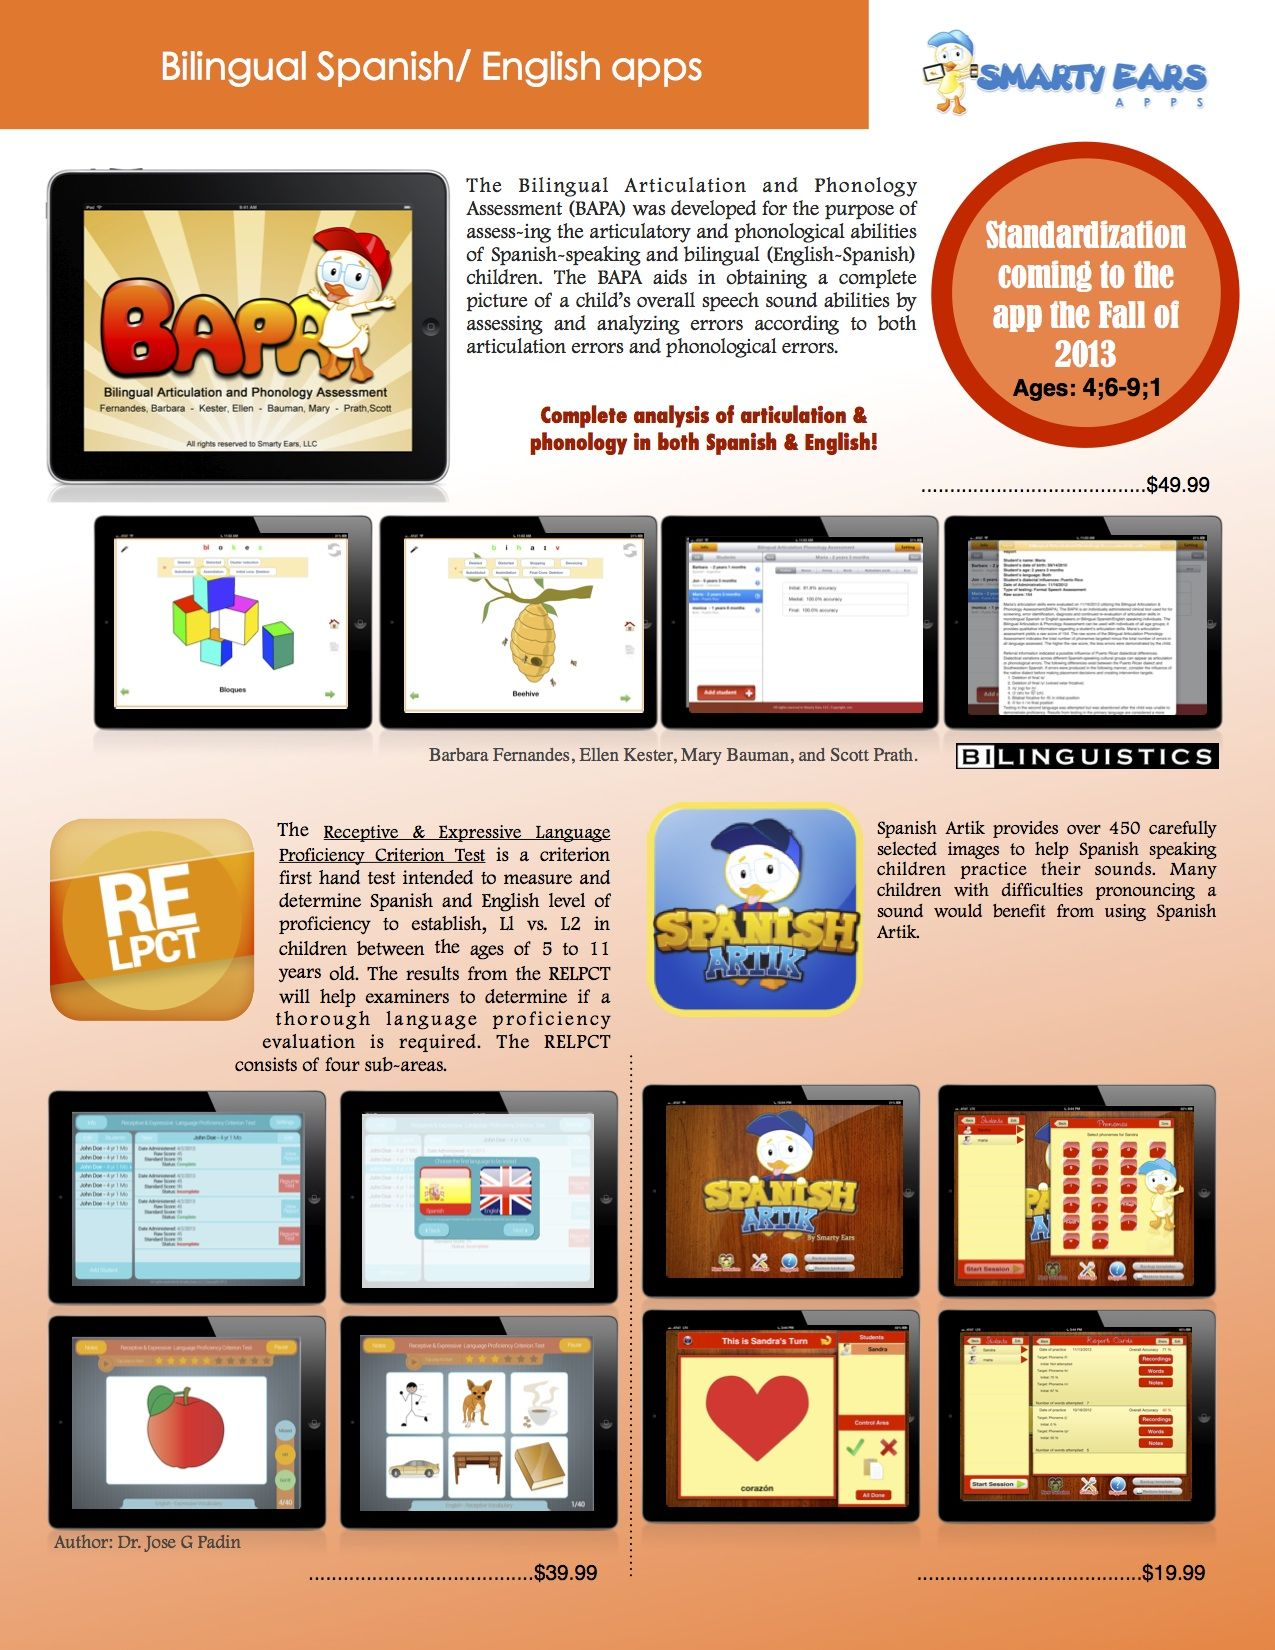 Check out Smarty Ears bilingual apps apps spanish